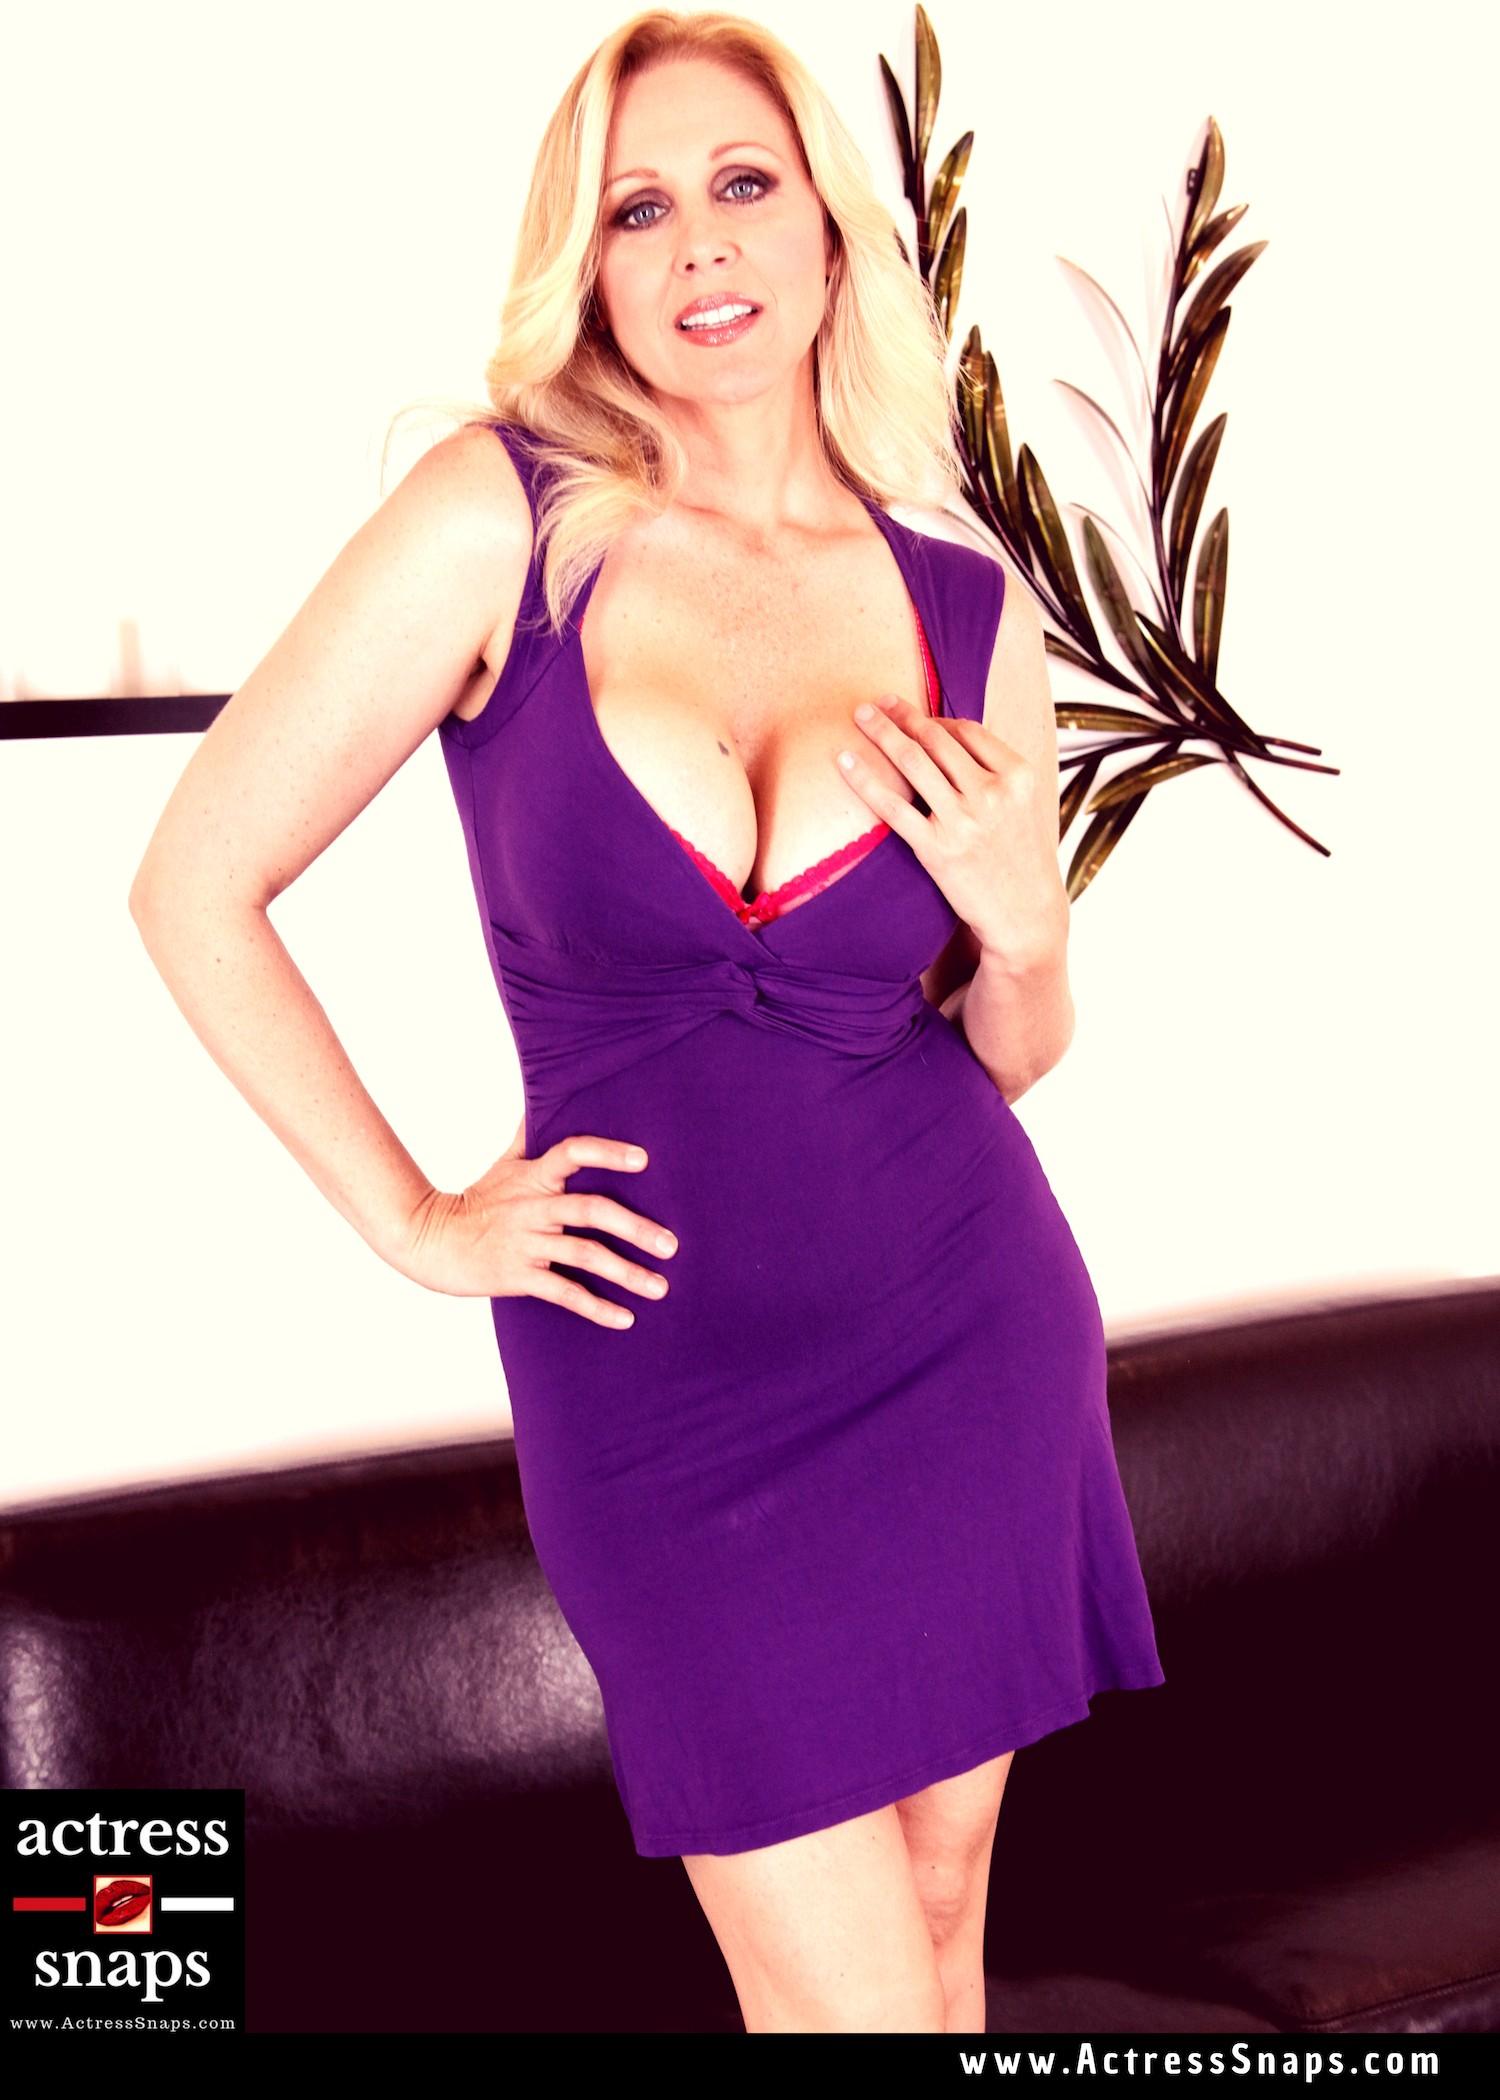 Sexy Julia Ann Pictures - Sexy Actress Pictures | Hot Actress Pictures - ActressSnaps.com